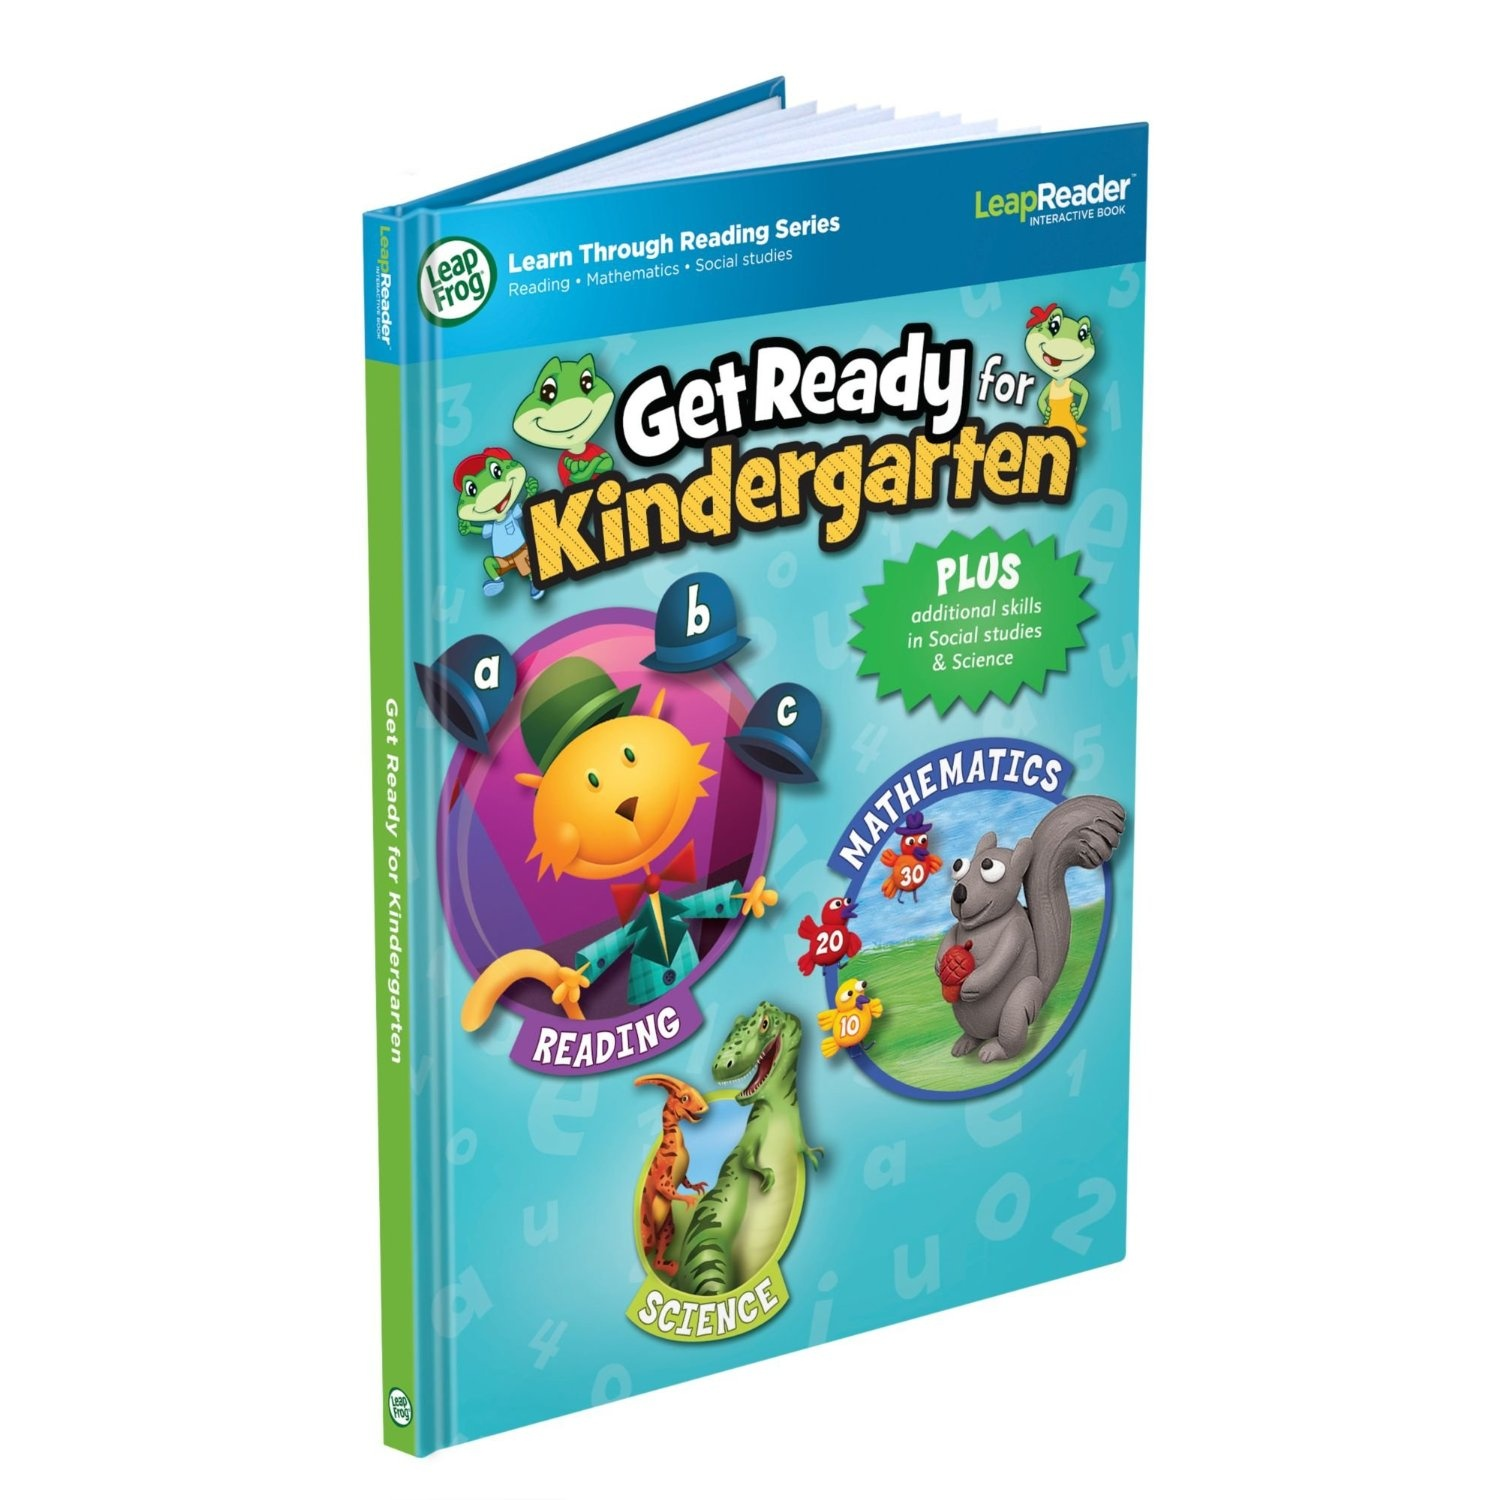 Leapfrog leapreader book by leapfrog shop online for toys in australia share this product gumiabroncs Gallery